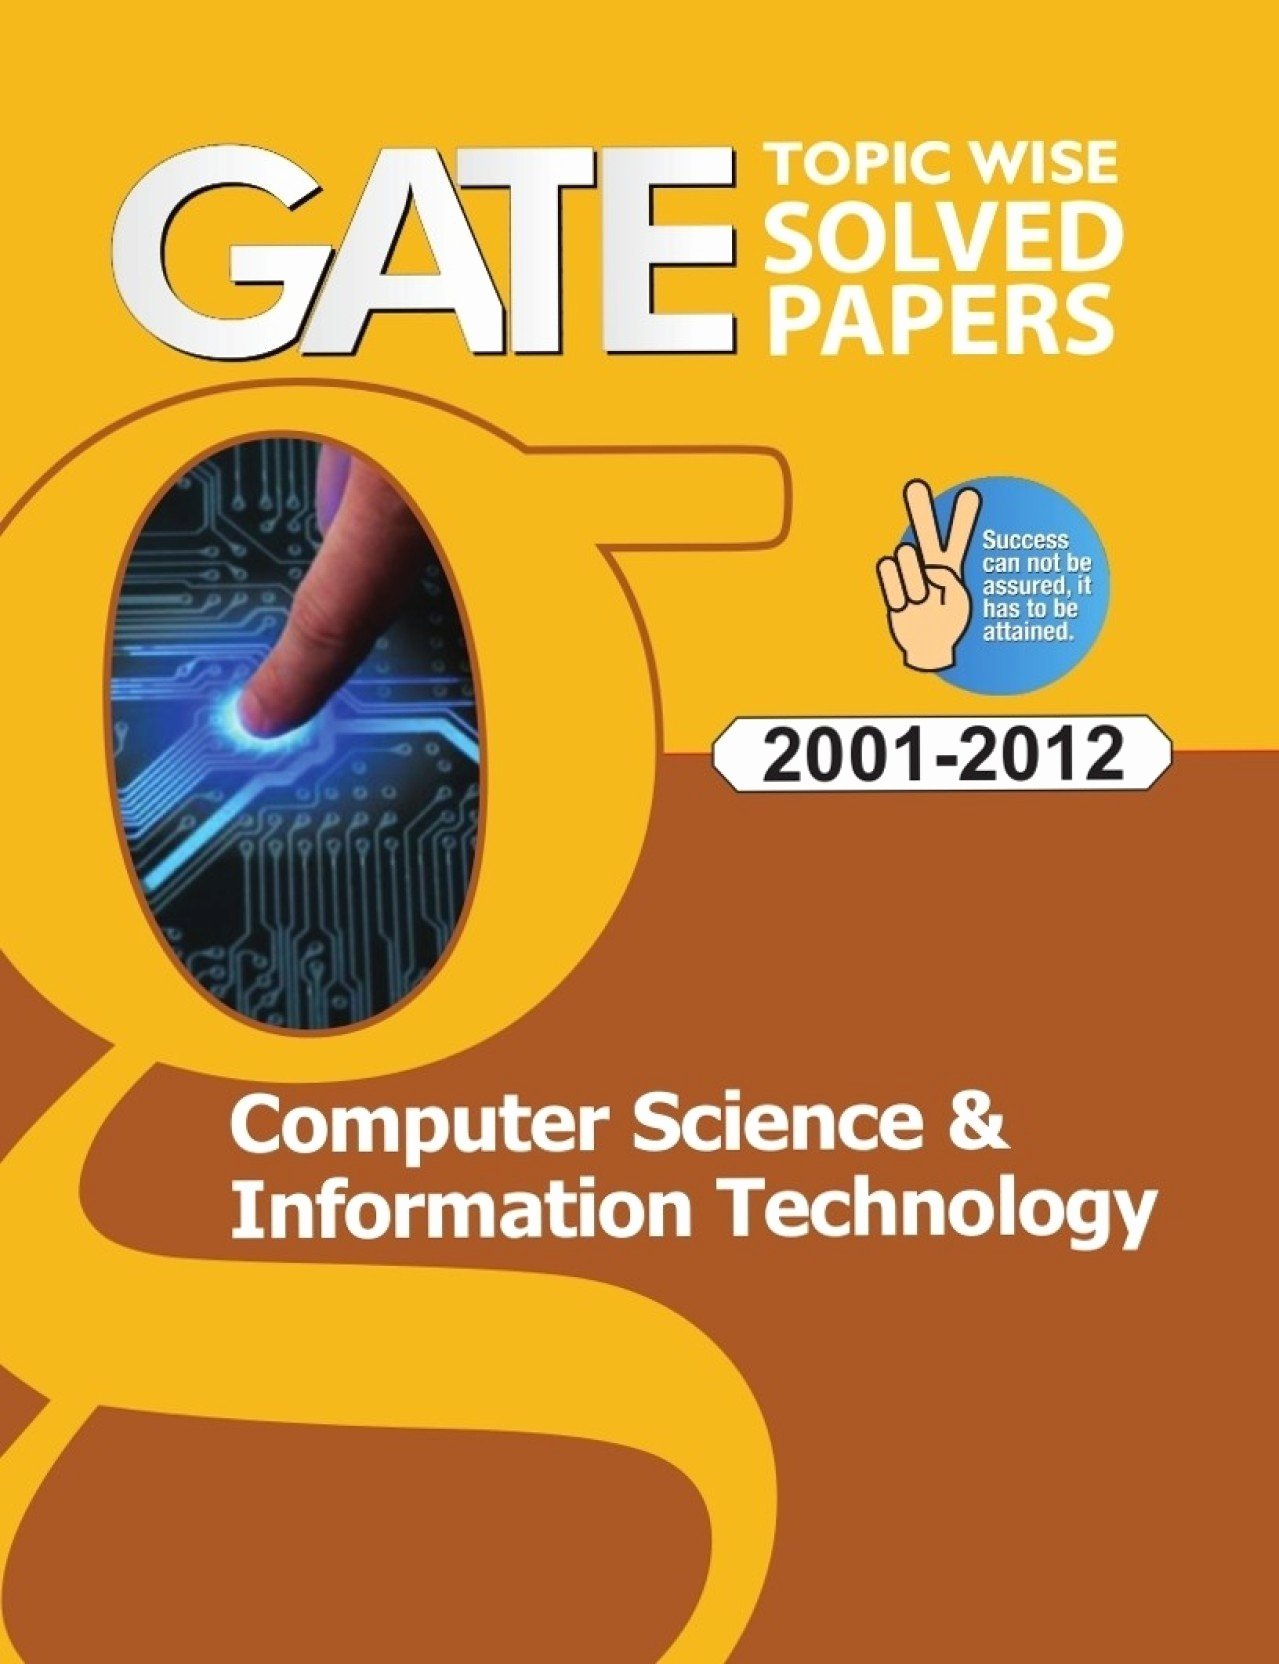 Science and Technology topics Beautiful Gate Puter Science & Information Technology topic Wise